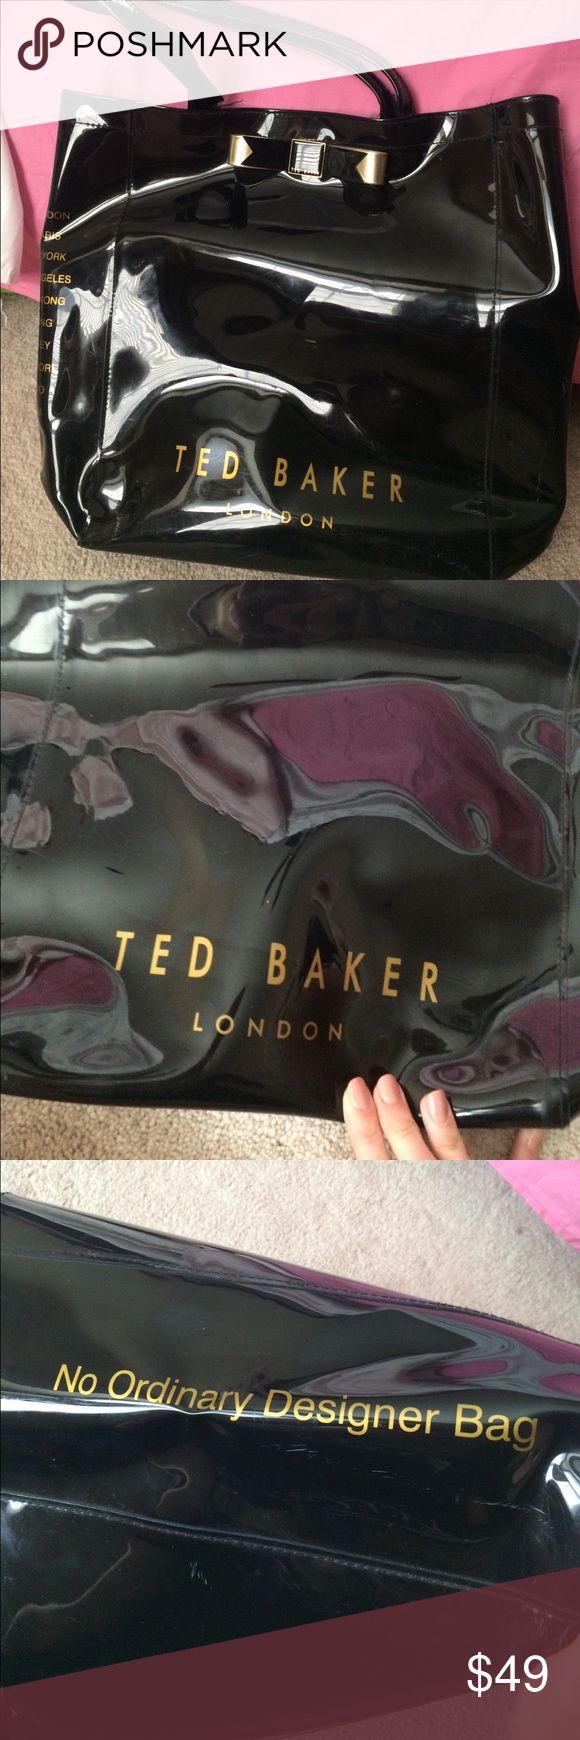 Ted Baker Large Icon Shopper Bag MAKE AN OFFER!! Ted Baker shopping bag with patent finish. Has bow with a gold colored finish. Logo on front, back, and inside of bag. 100% PVC. 22cm strap drop. 36 cm H x 24 cm W x 8.5 cm D. Must have for a diaper bag, school bag, book bag, travel bag, or carry on bag. Great for anyone who likes British fashion, kawaii fashion, Ariana Grande style or Gabriella Demartino style. *Bag has strap that is starting to come off, but can easily be fixed. Ted Baker…